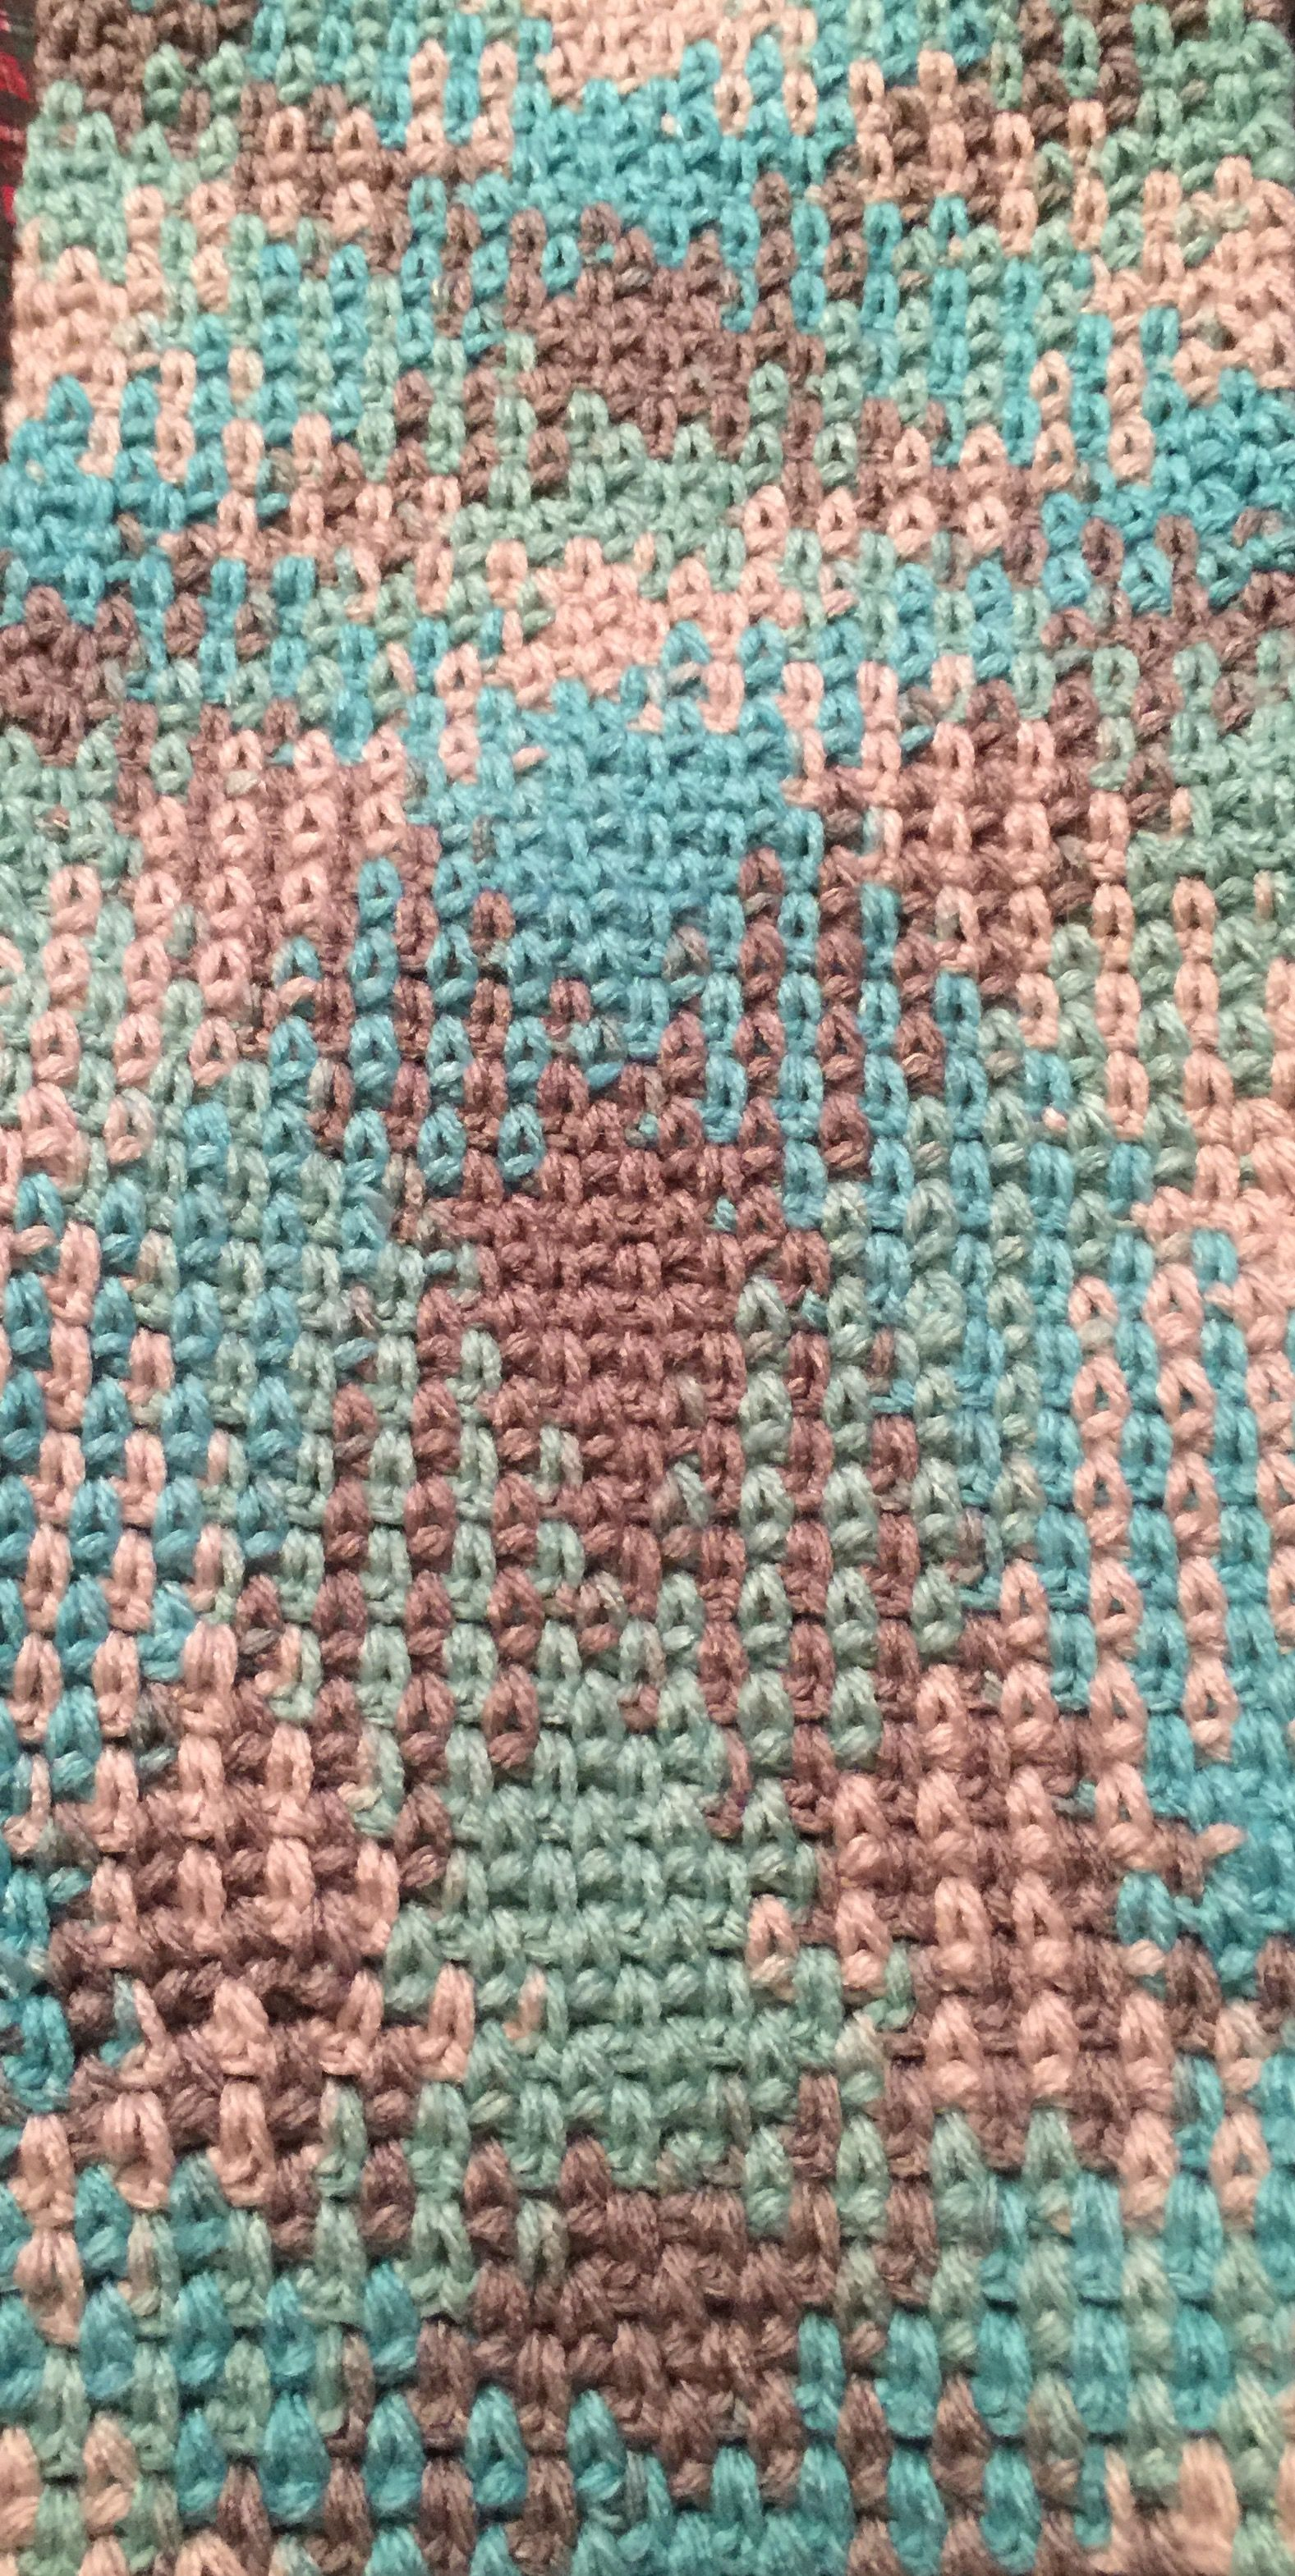 I'm finally pooling.  The video that helped me most was by The Crochet Crowd by Mikey. Simple and easy to understand and follow along. (Not perfect yet but a good start).